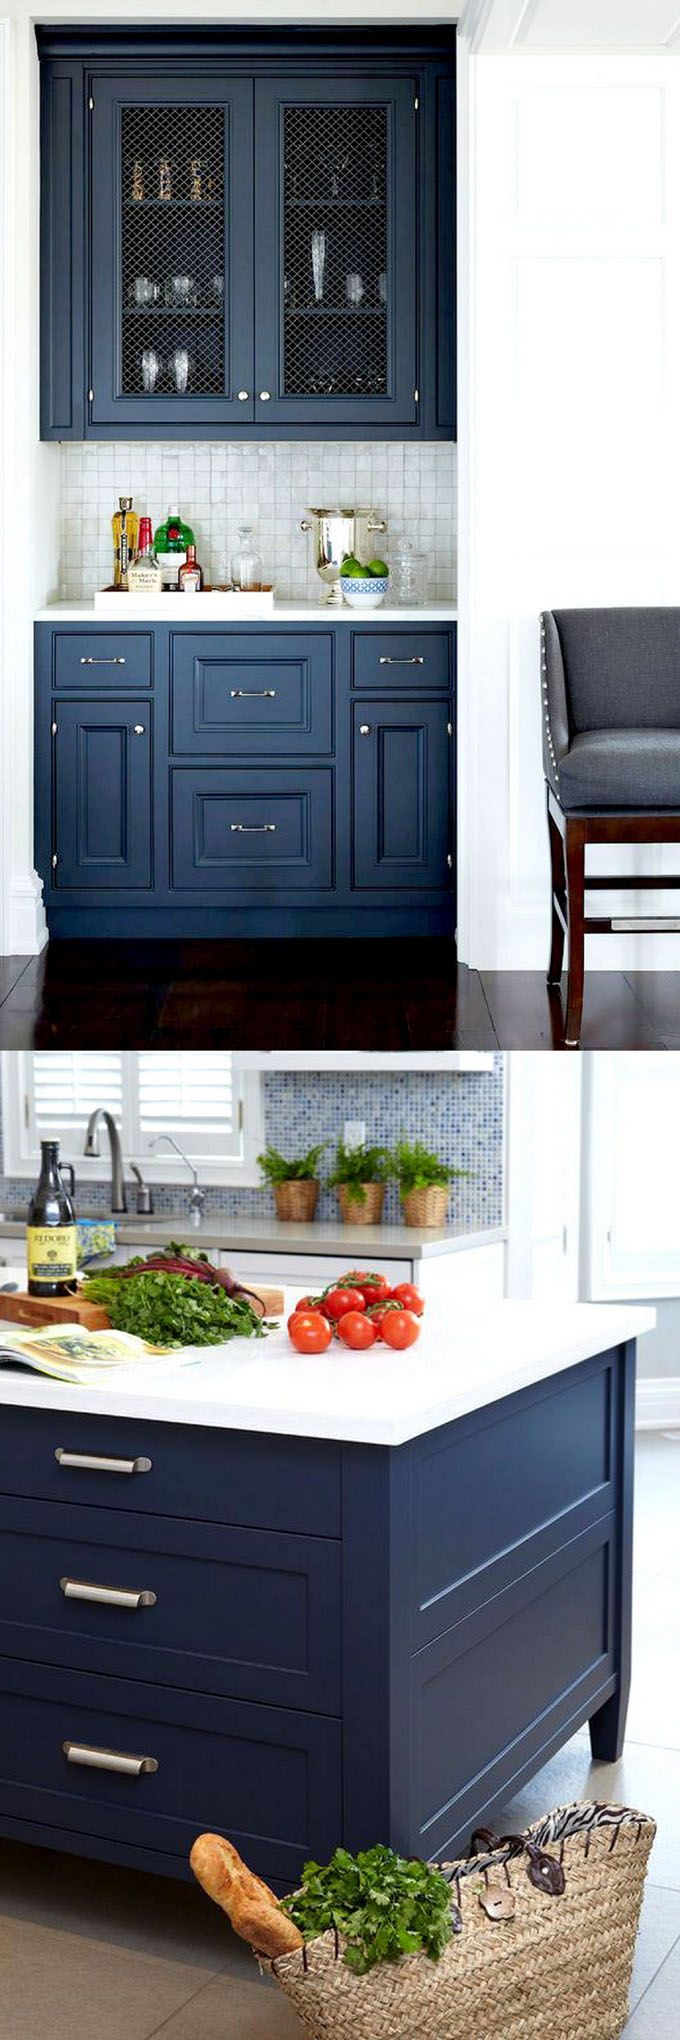 best kitchen cabinet paintBest 25 Kitchen cabinet paint ideas on Pinterest  Painting